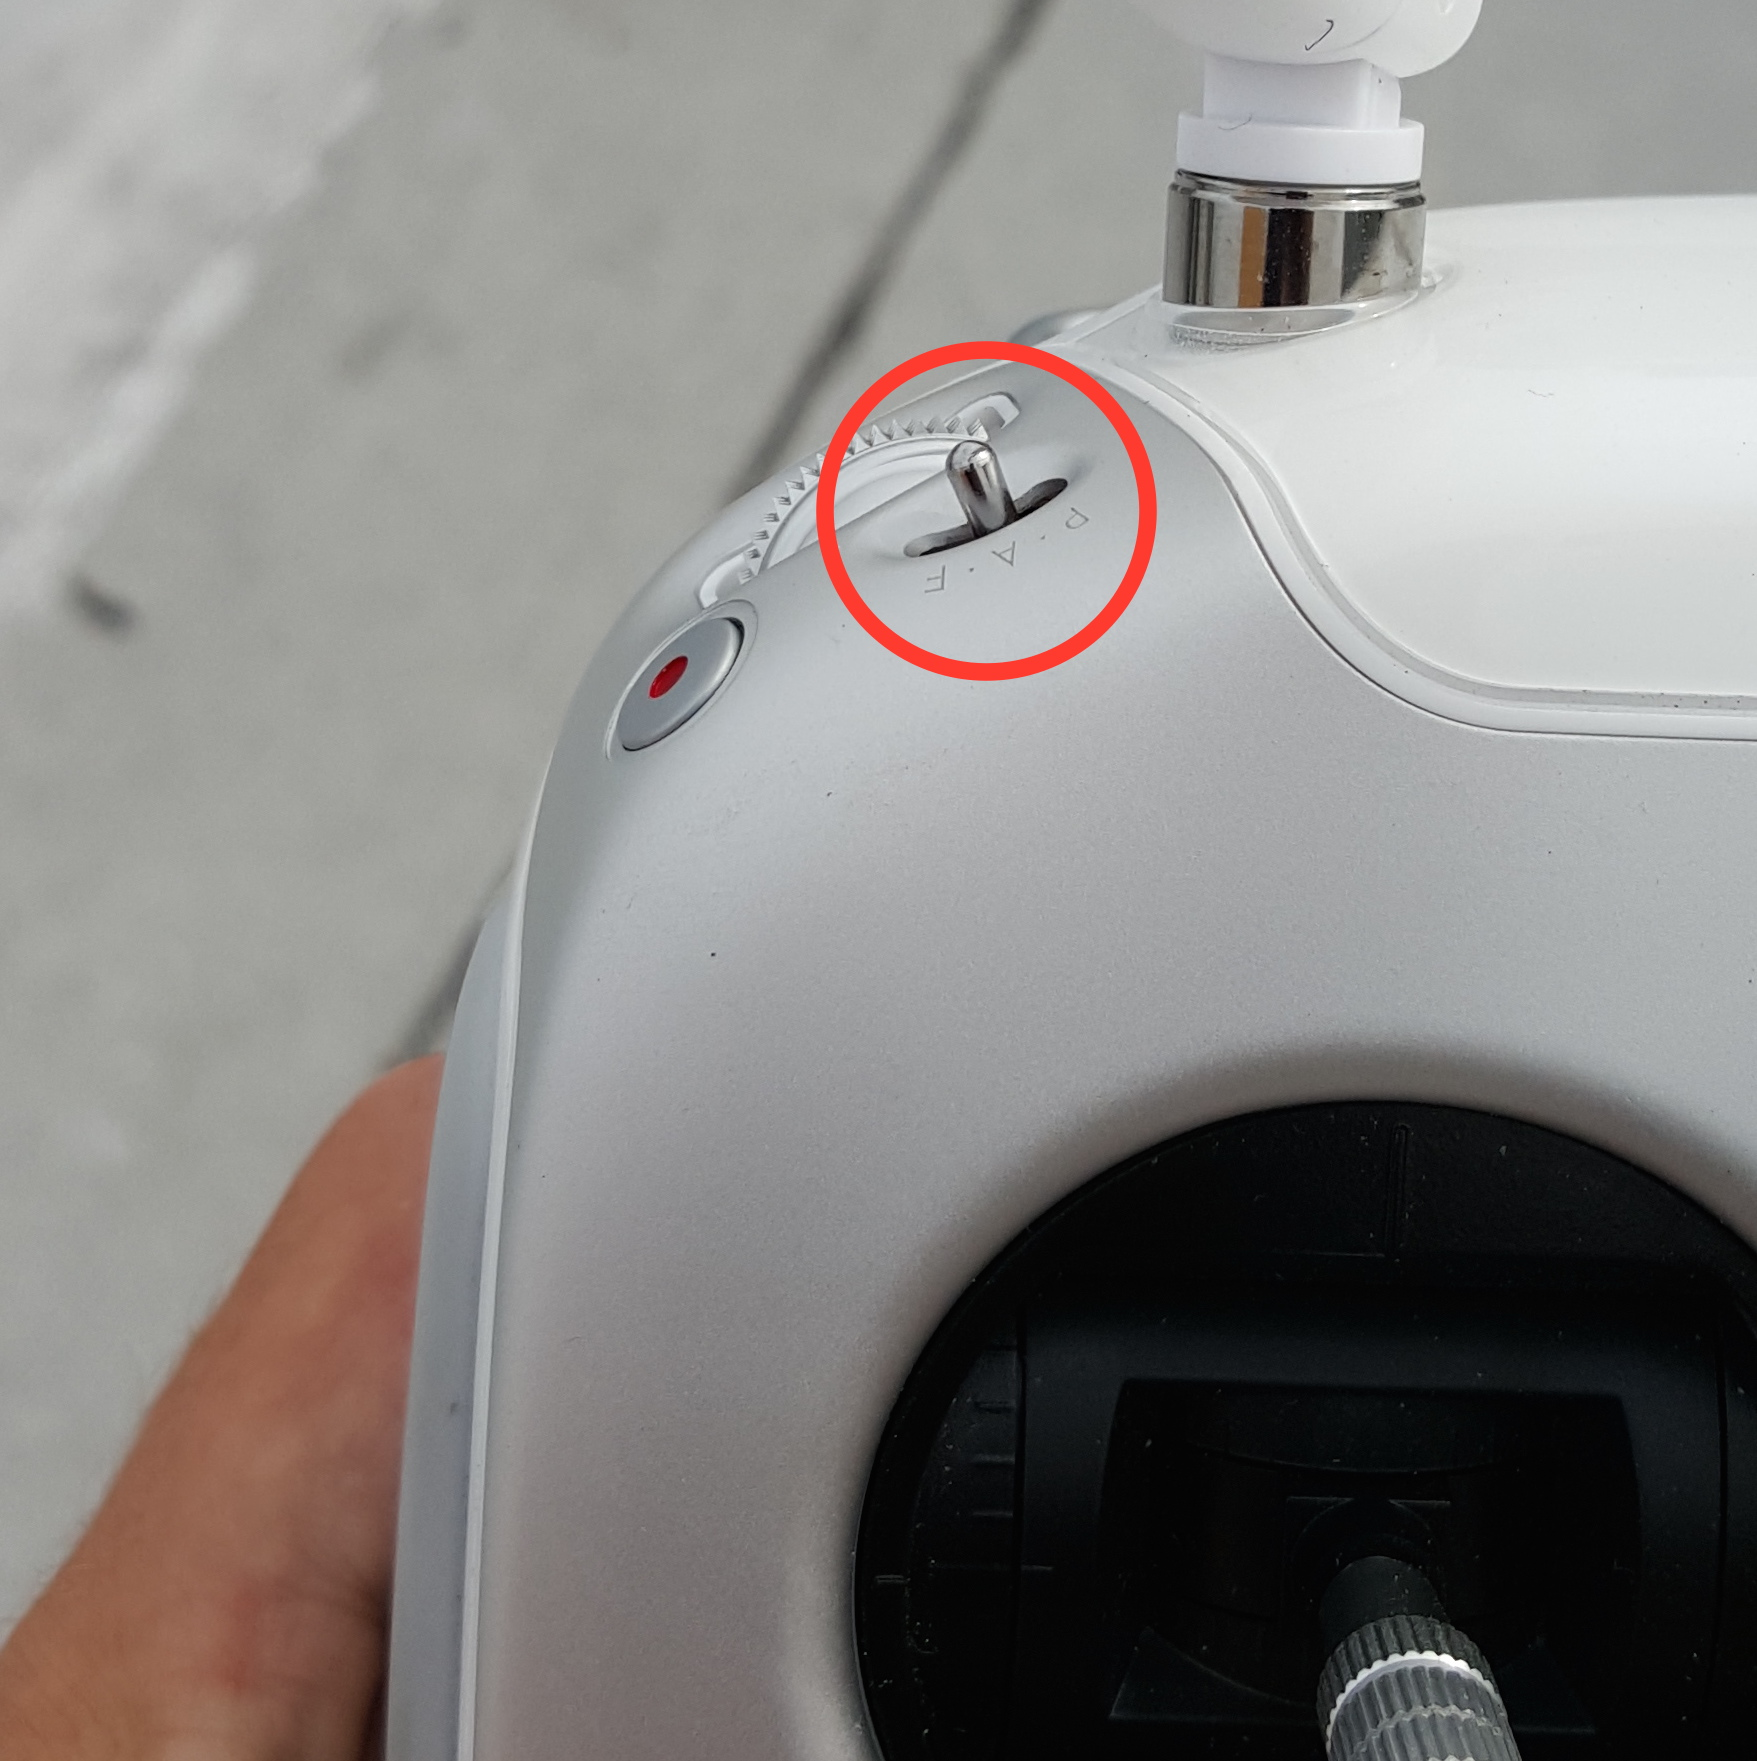 Position of mode switch on remote controller (P3 pictured).